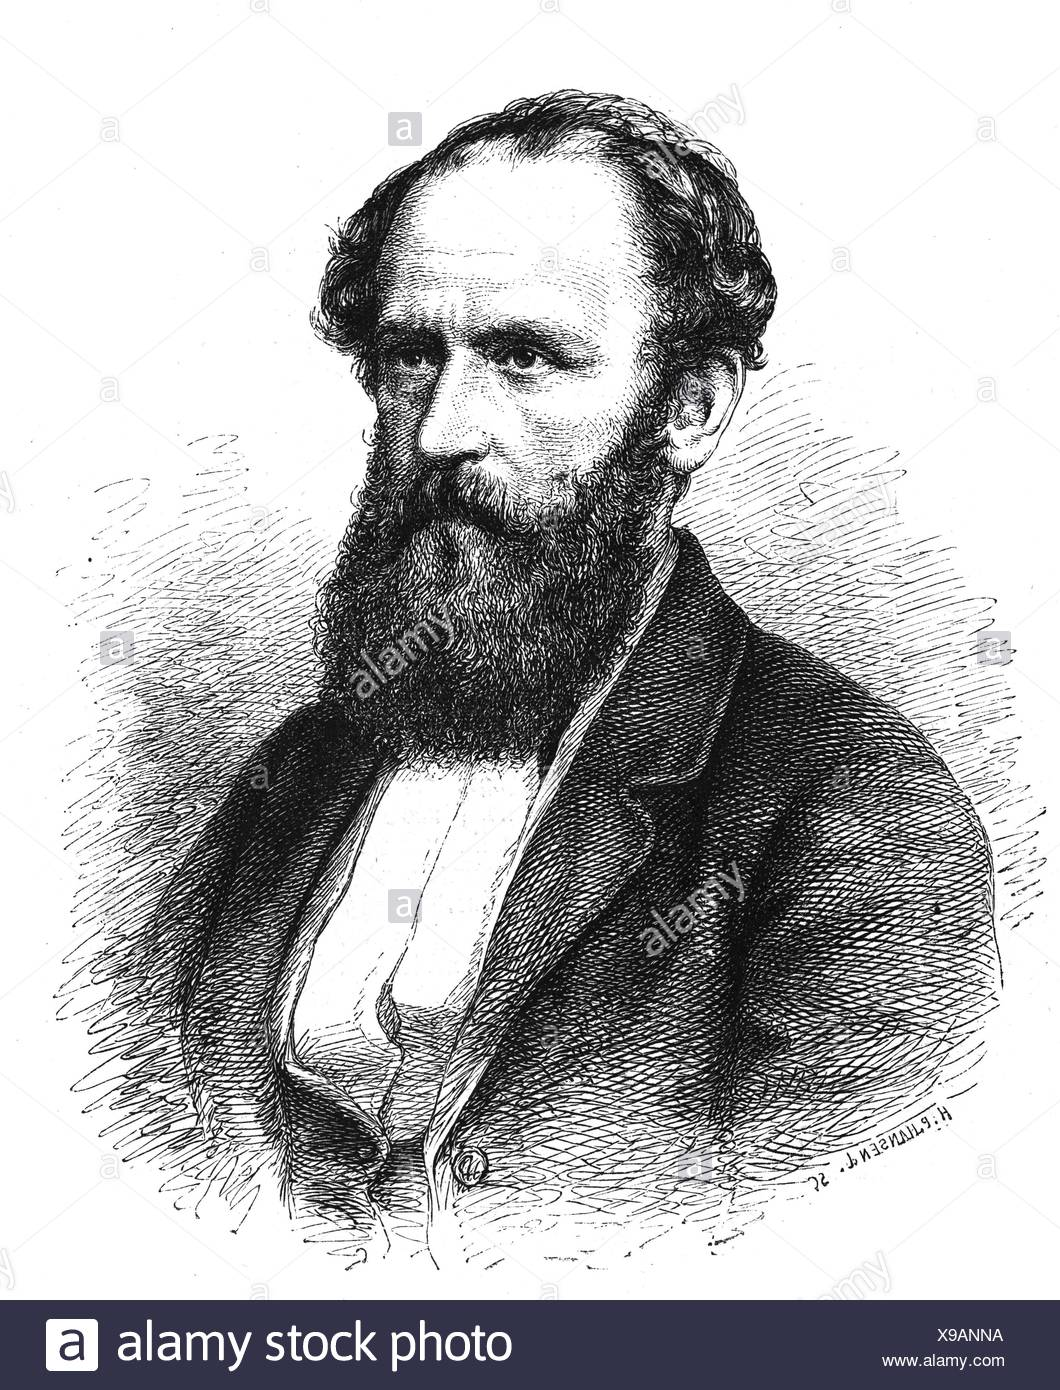 Bucher, Lothar, 25.10.1817 - 12.10.1892, German civil servant, politician and journalist, reporting counsel in the Foreign Ministry 1871 - 1886, portrait, wood engraving after drawing by H. P. Hansen, 1874, Artist's Copyright has not to be cleared Stock Photo